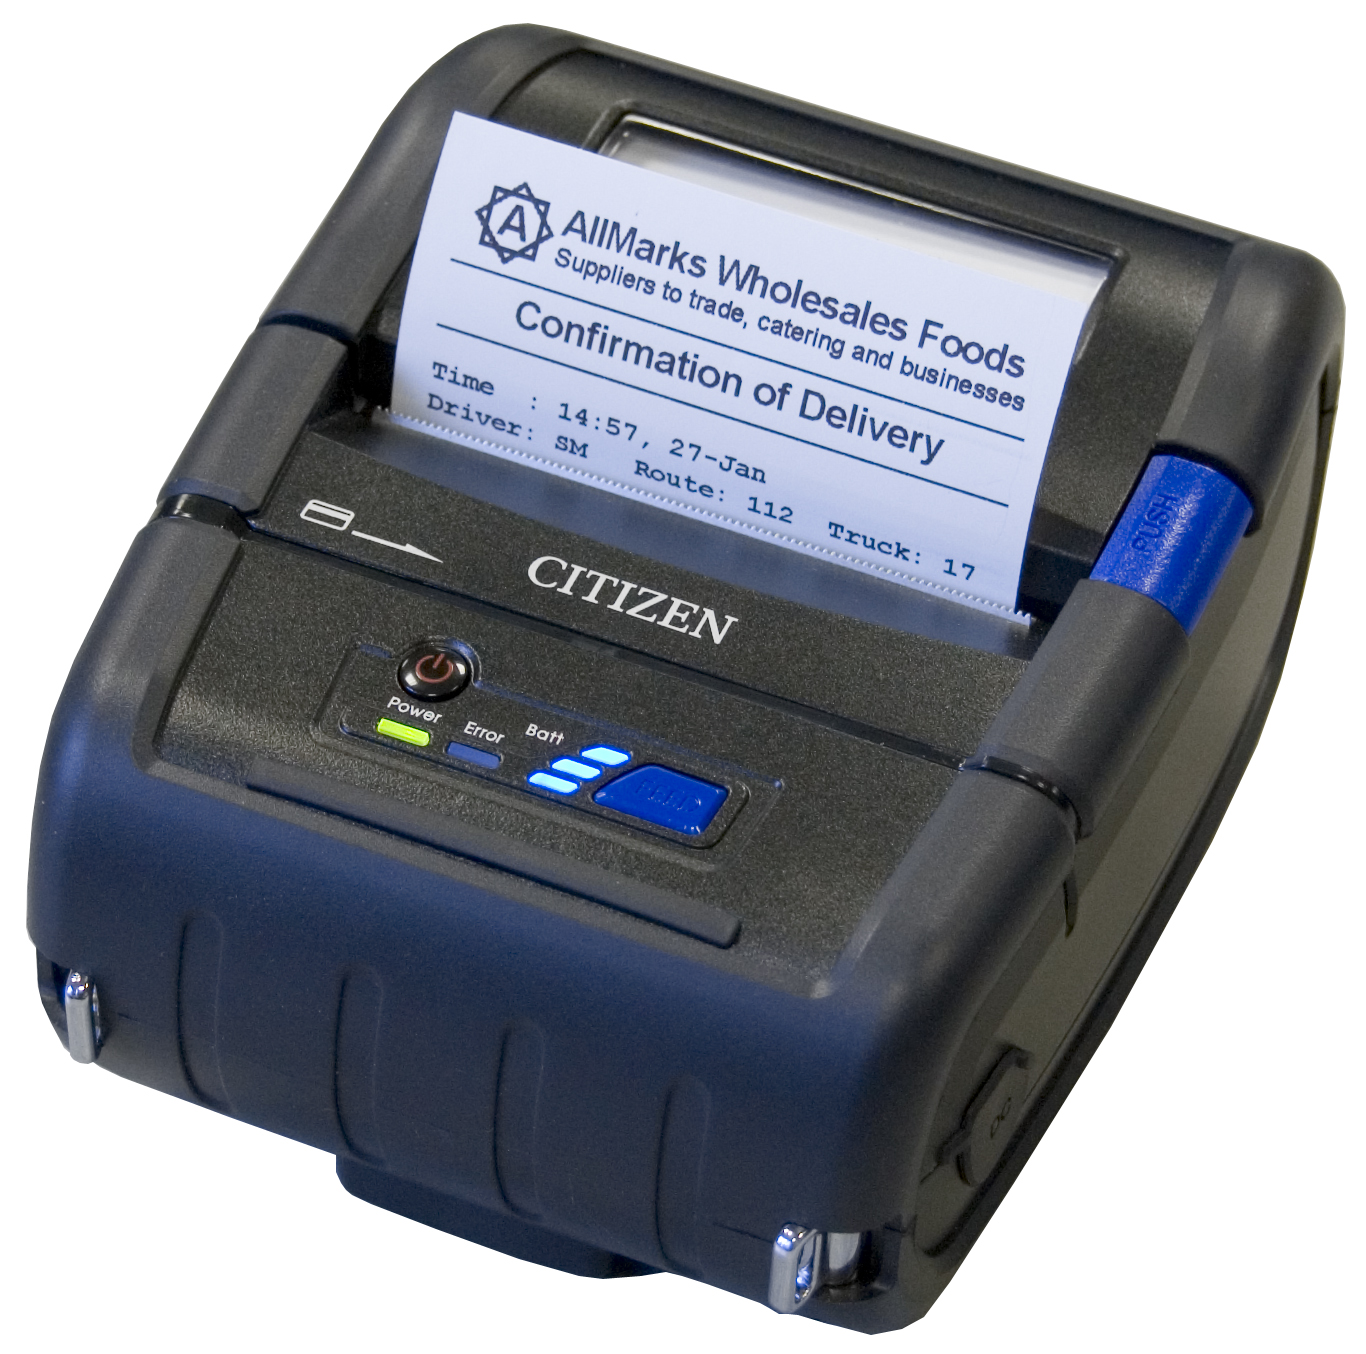 Citizen CMP-30 Mobile Bill Printer